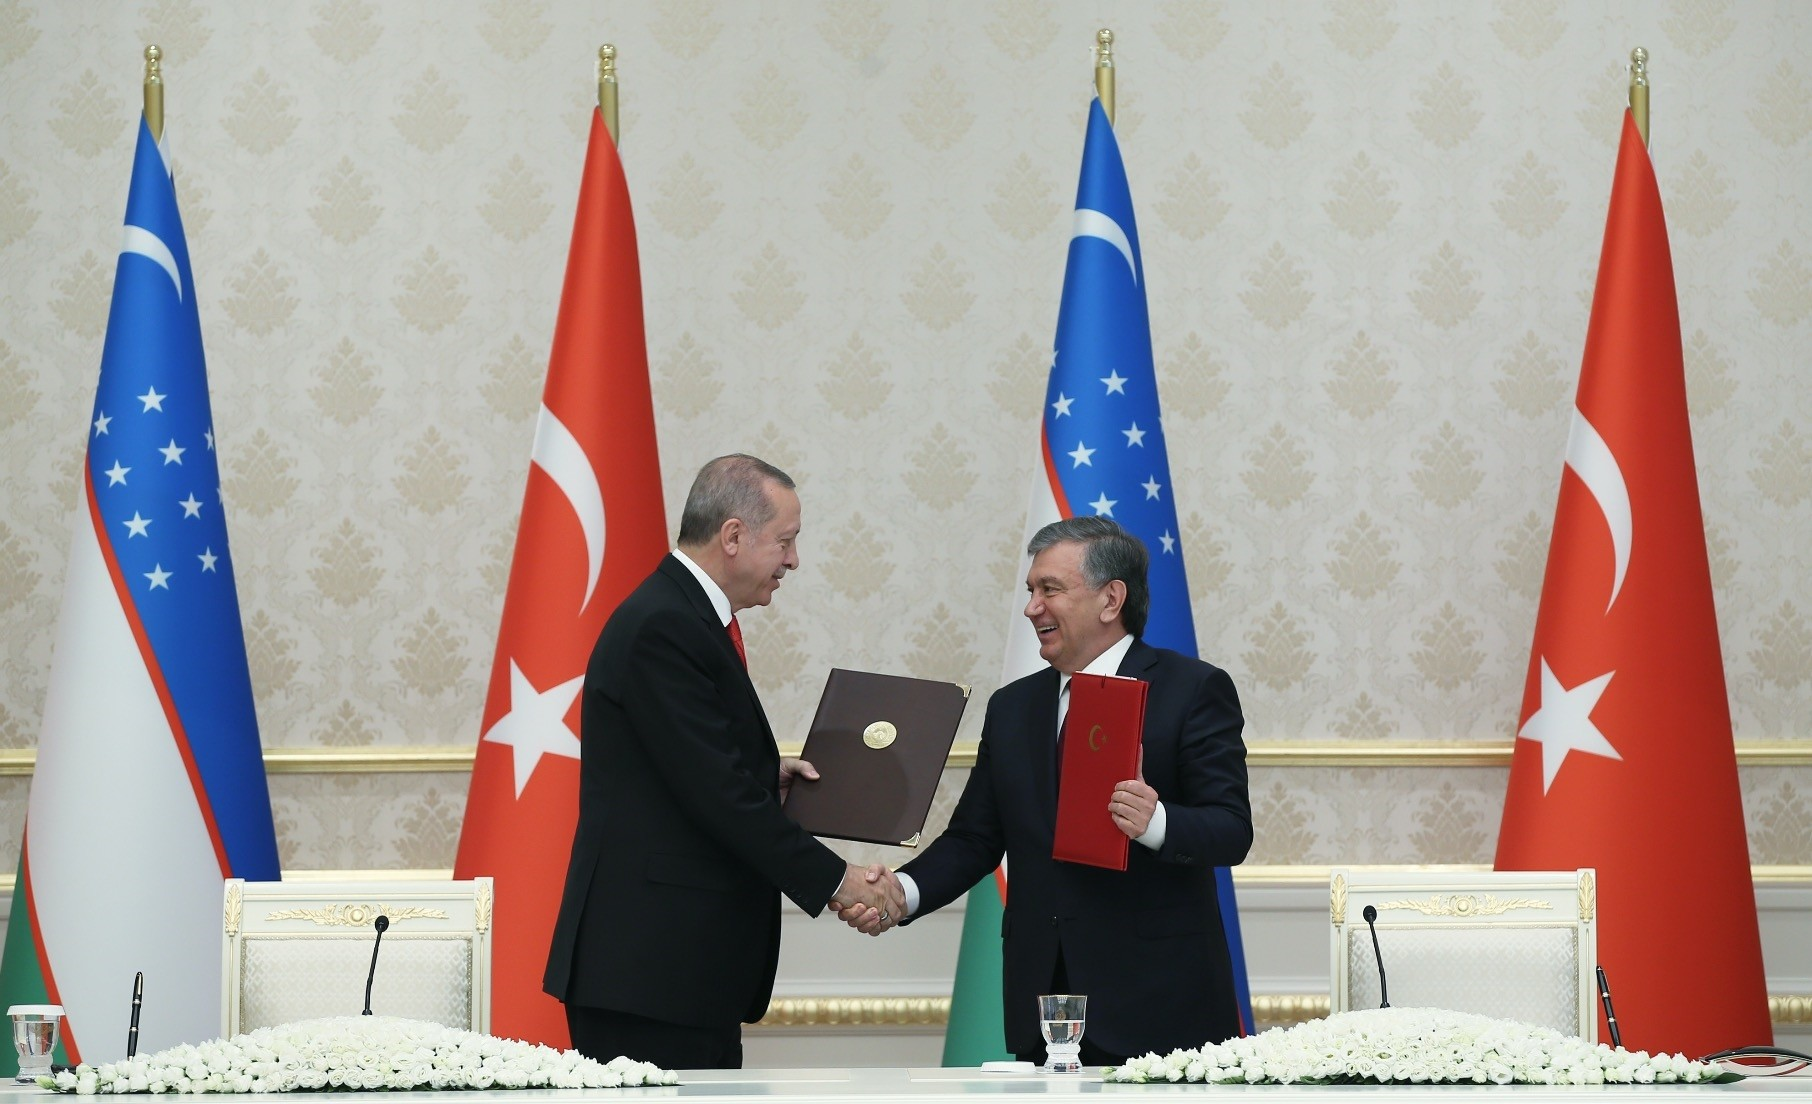 President Erdogan (L) and Uzbekistan's President Mirziyoyev shake hands during a signing ceremony of agreements between the two countries following their meeting in Tashkent, Uzbekistan, April 30.